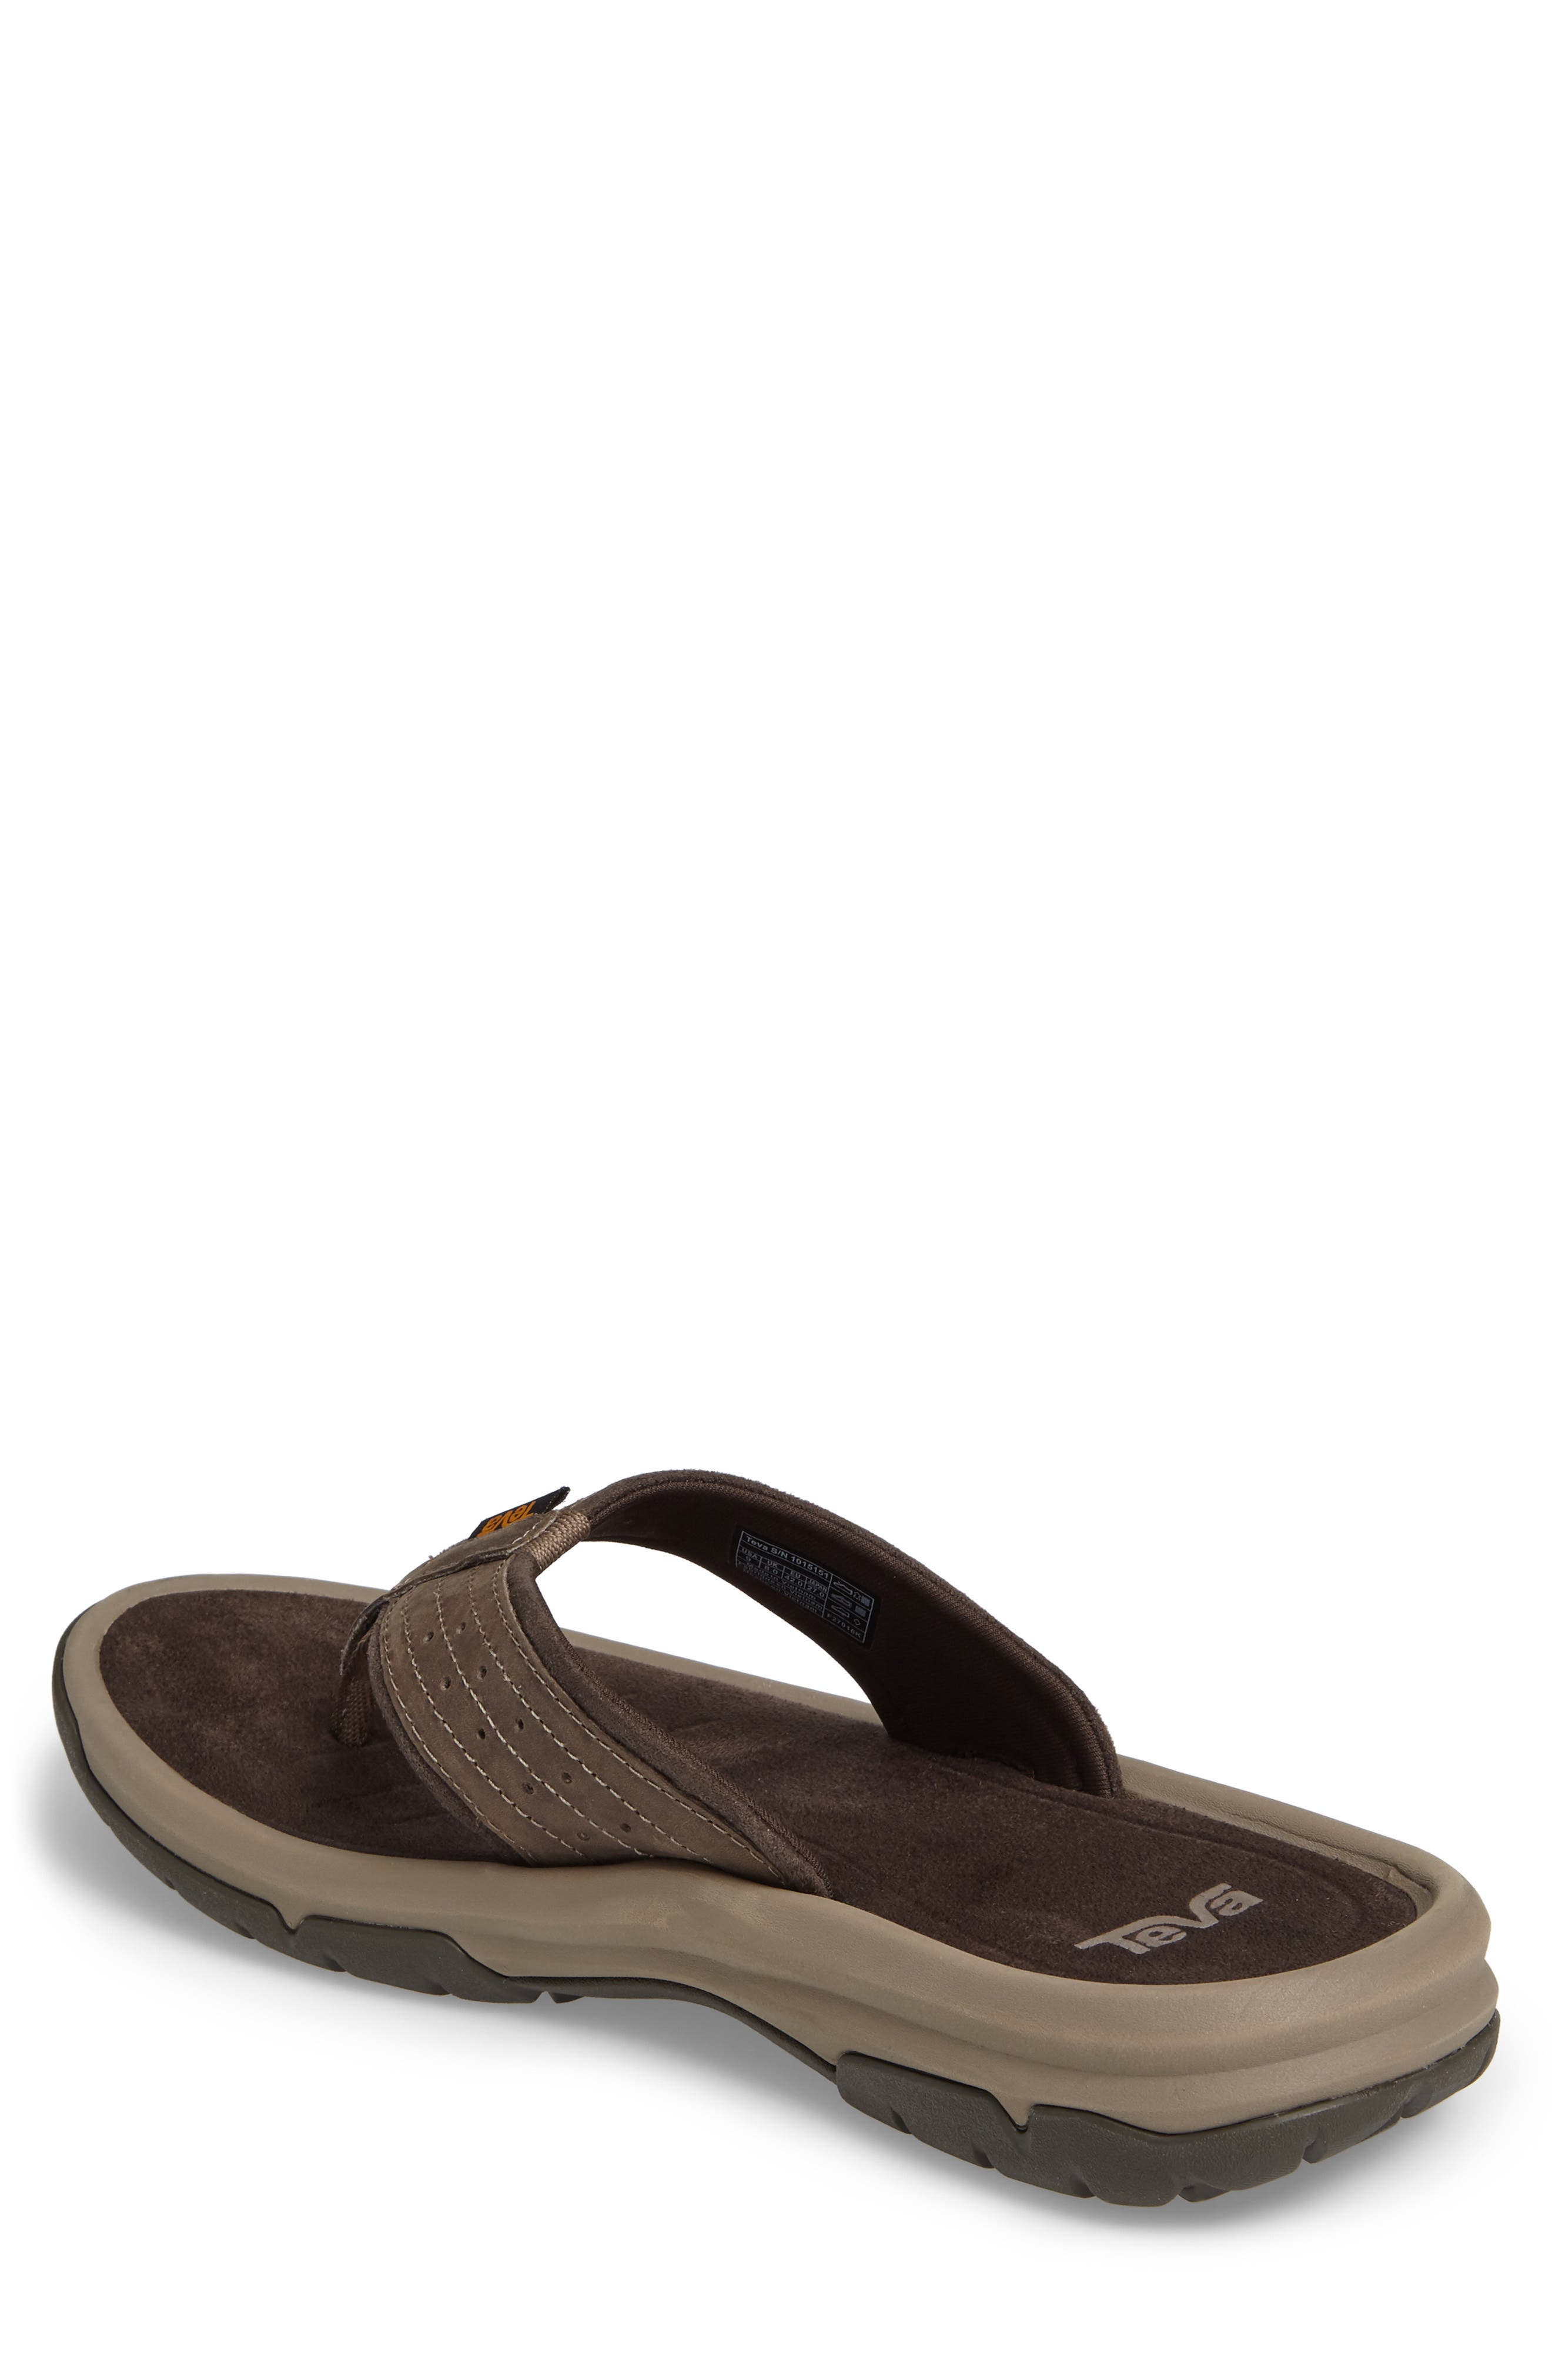 TEVA, Langdon Flip Flop, Alternate thumbnail 2, color, WALNUT